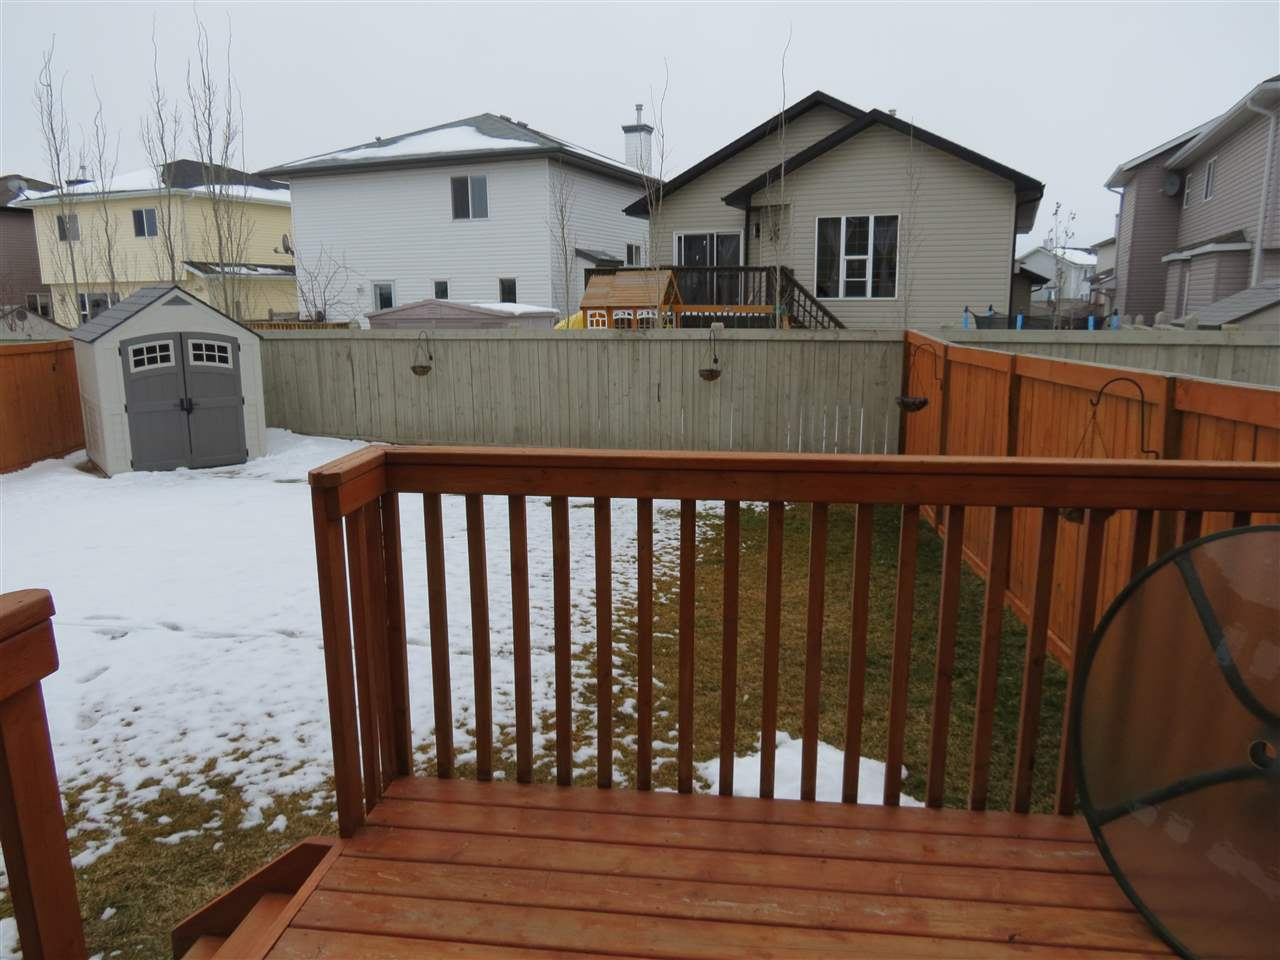 Photo 24: 9429 80 Avenue: Morinville House Half Duplex for sale : MLS(r) # E4059755